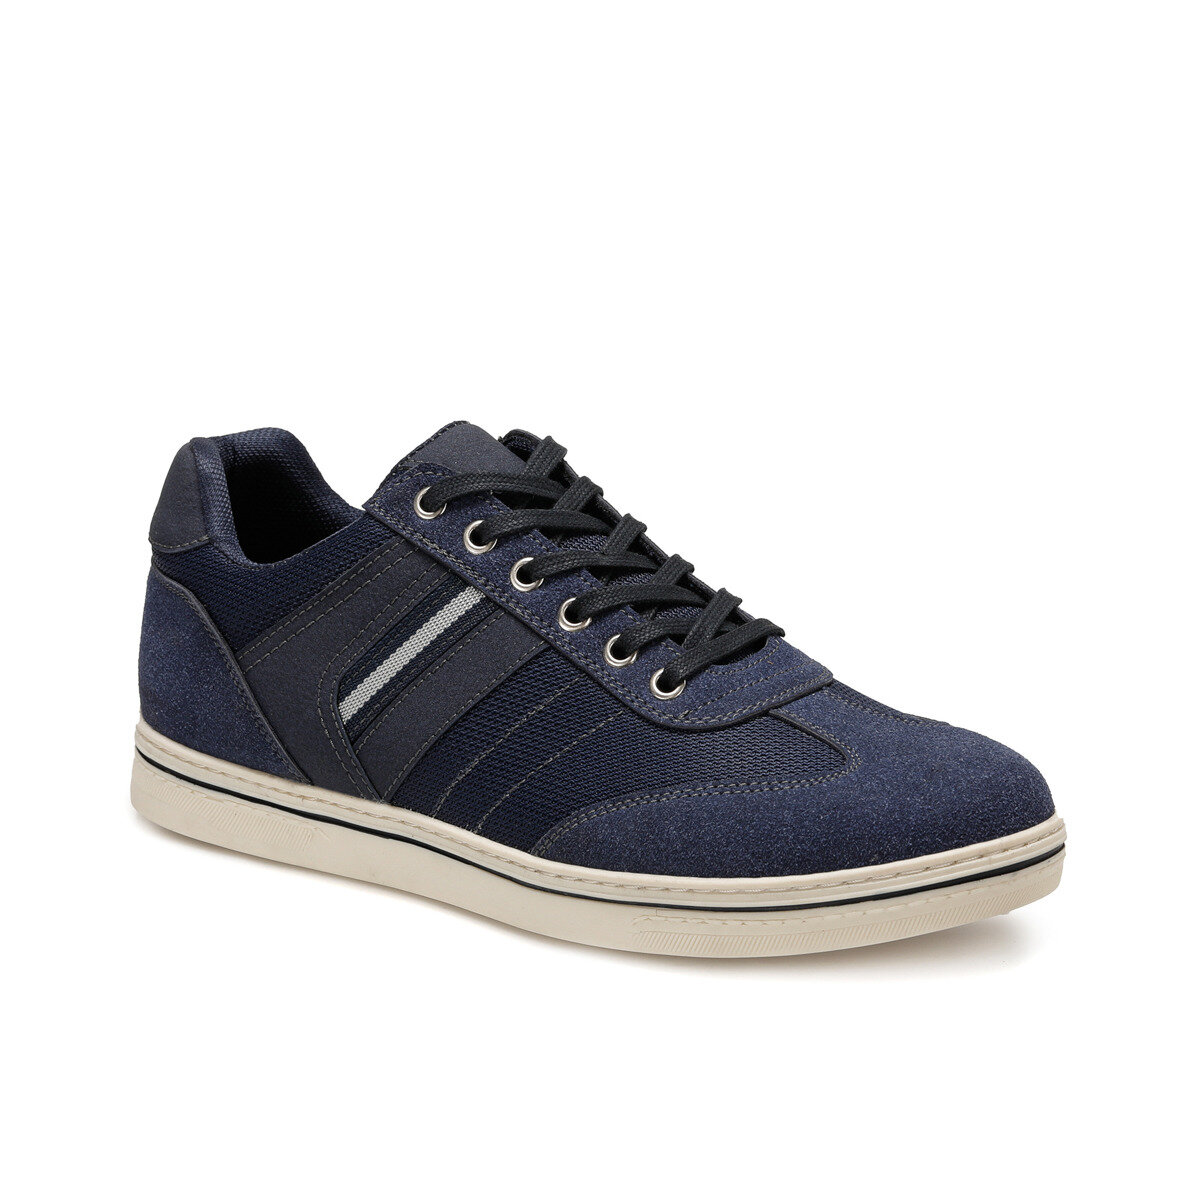 FLO BS400 Navy Blue Men 'S Sneaker Shoes Panama Club